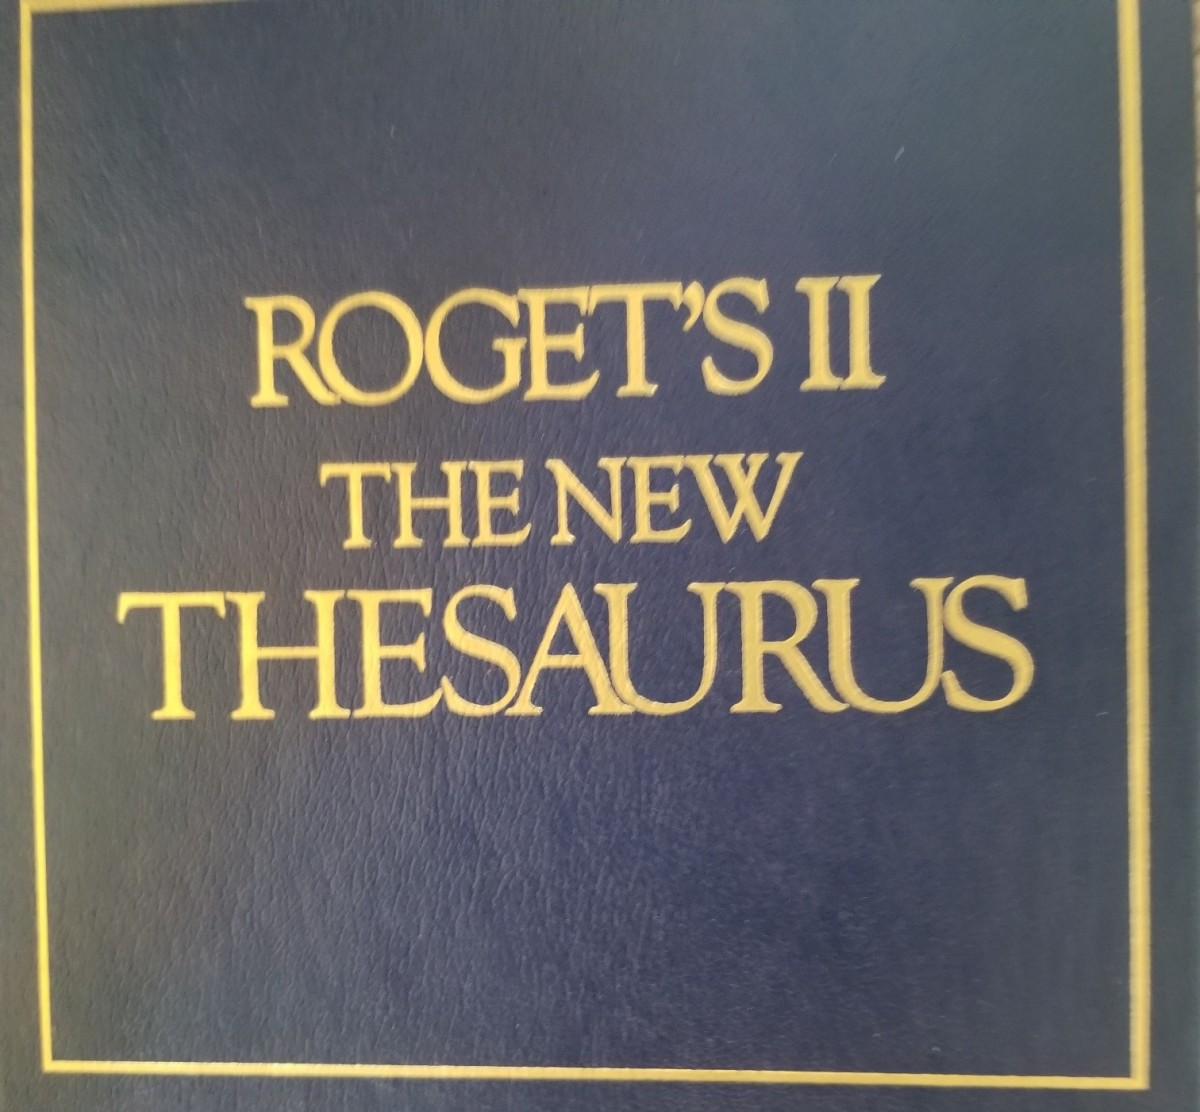 A thesaurus can help make your writing interesting.